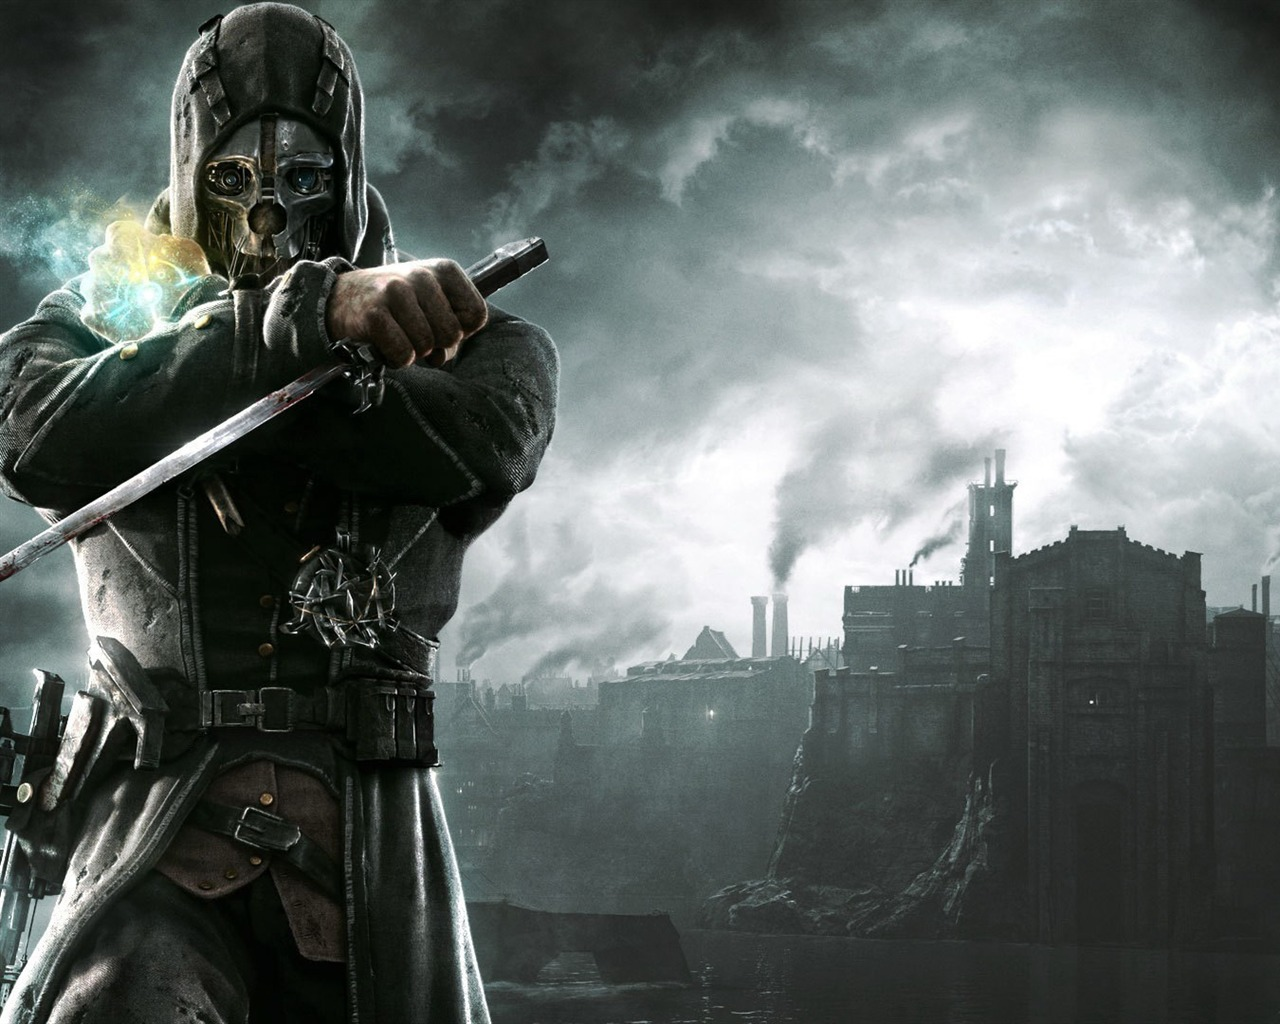 Street Fighter Wallpaper Hd 1080p Dishonored Game Hd Wallpaper 10 Preview 10wallpaper Com